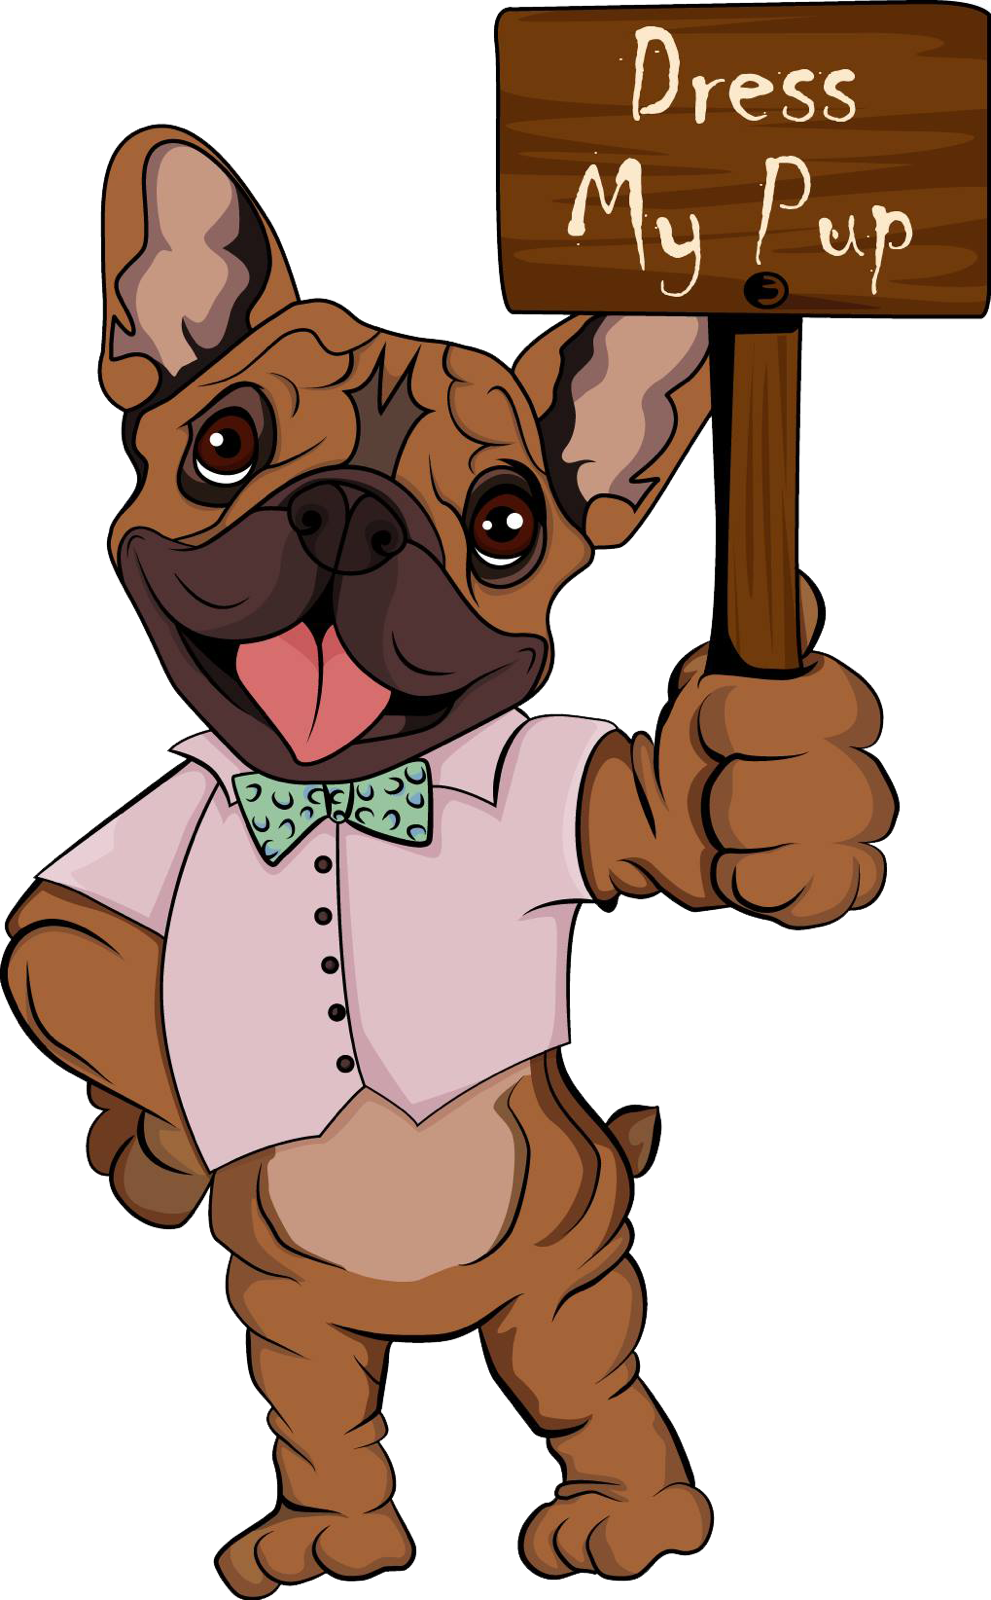 Dog collar leash clipart clip free Cheap Dog Clothing And Accessories – Affordable Cheap Dog Clothing clip free